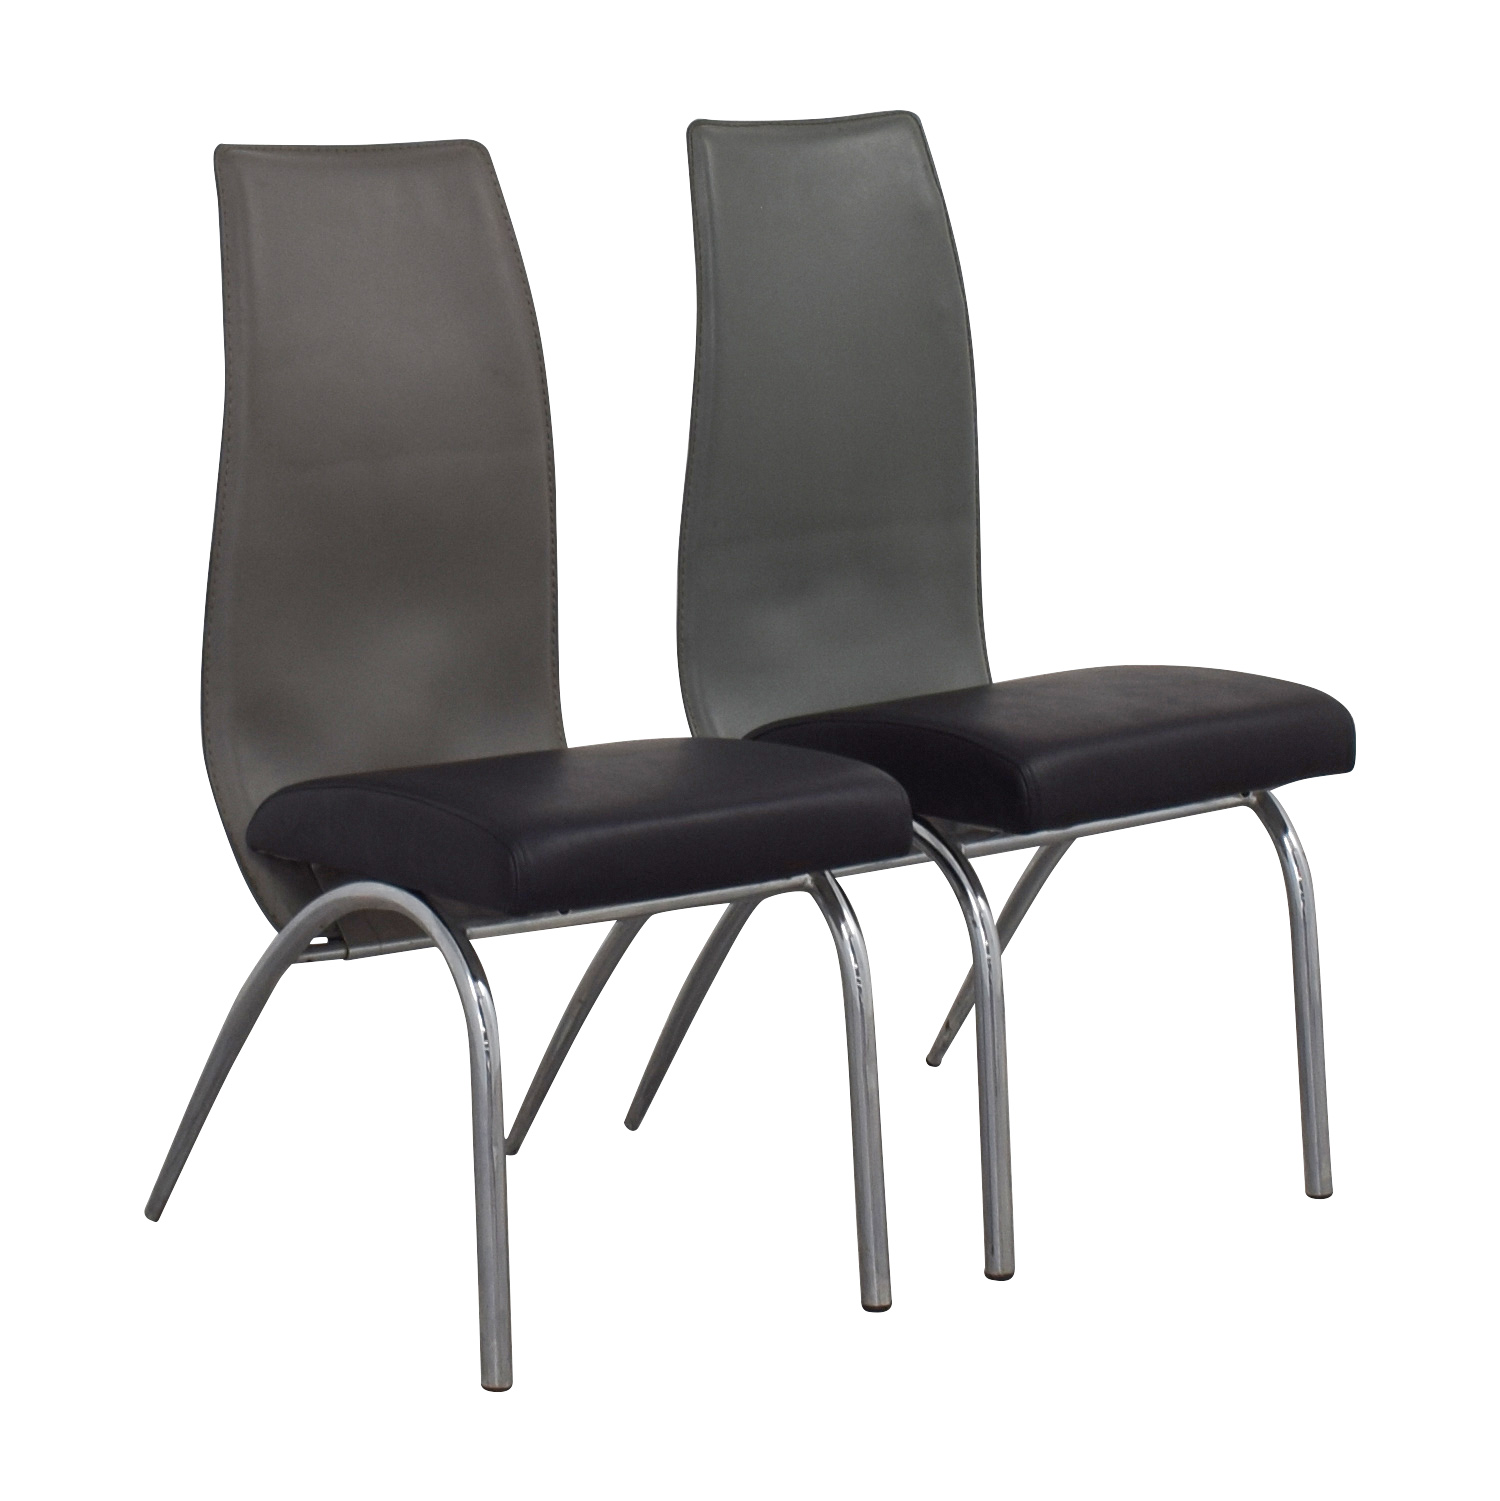 ESF ESF Black and Grey Modern Dining Chair dimensions